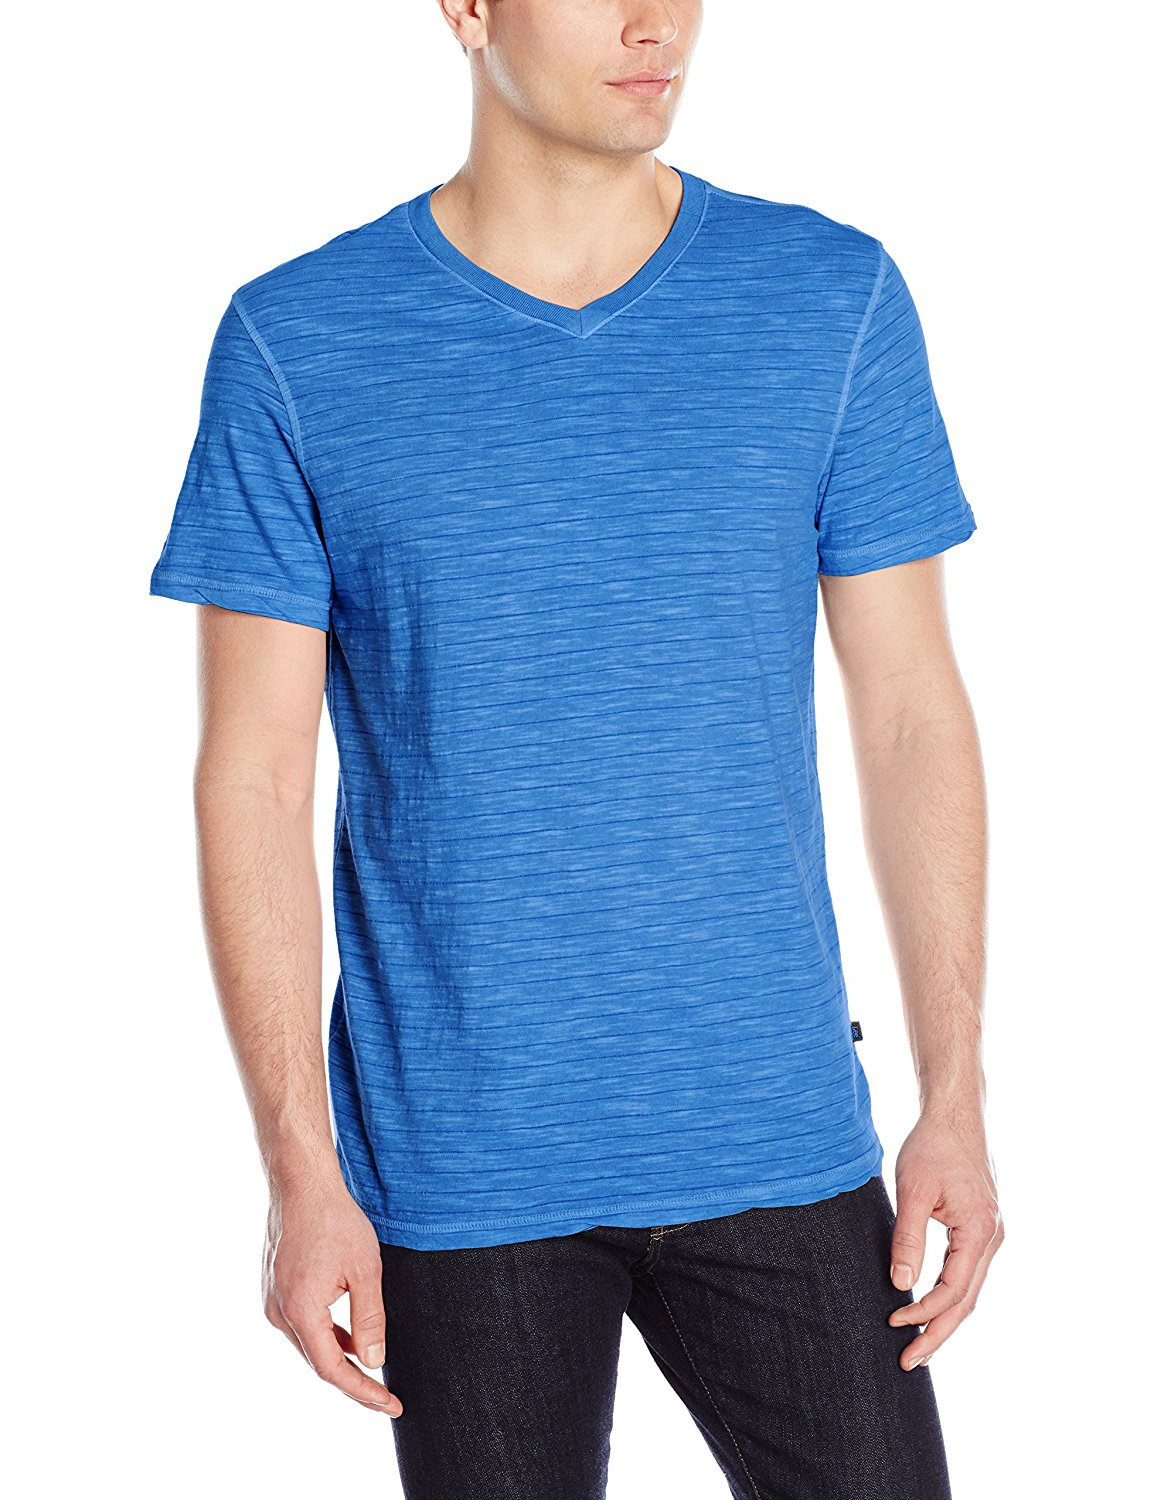 Lee Men's Tipping V-Neck Premium Tee (Regular and Big and Tall Sizes)